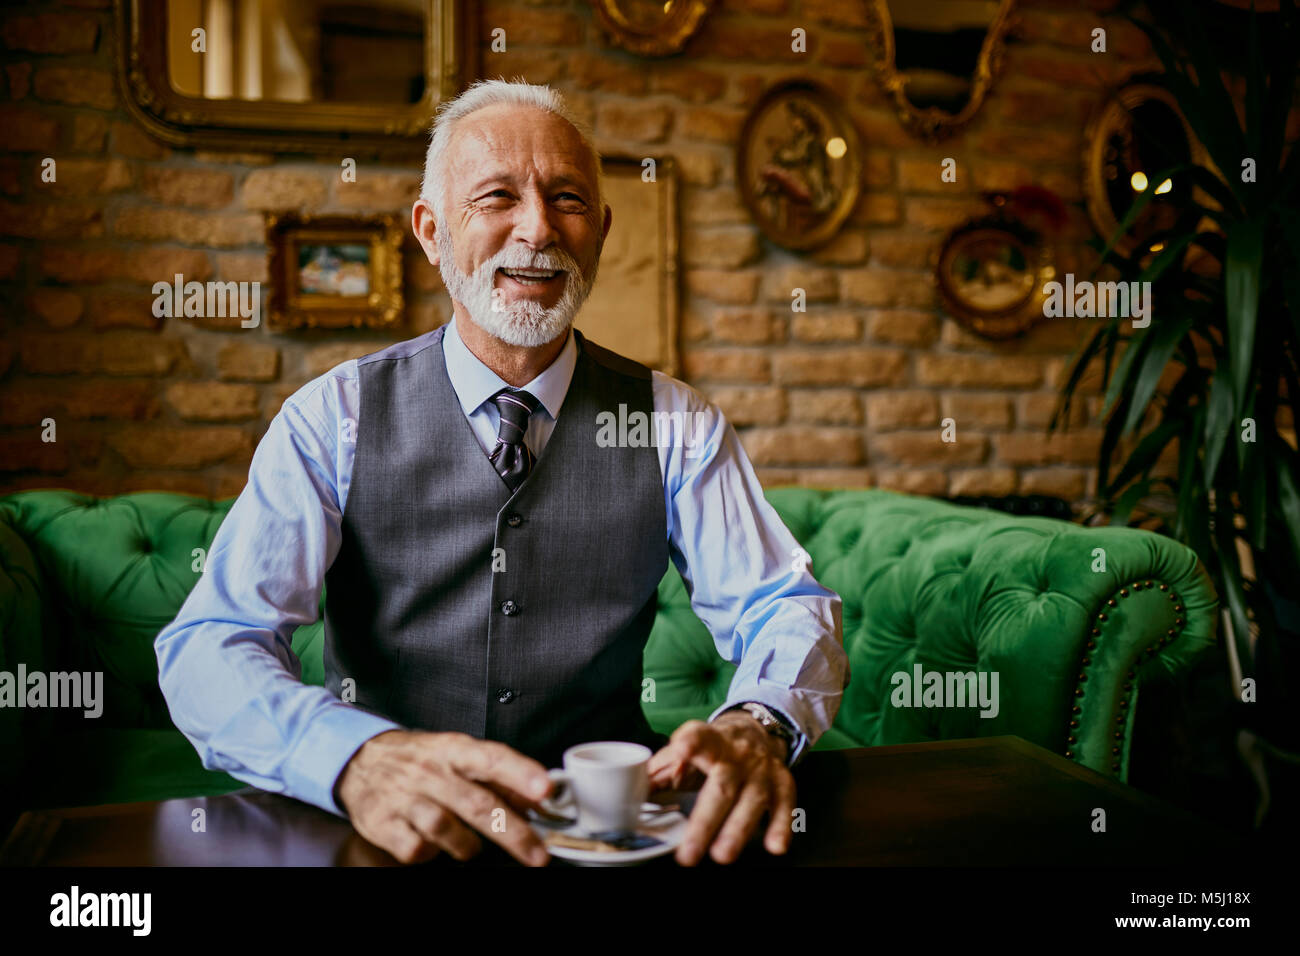 Portrait of elegant senior man sitting on couch in a cafe smiling Stock Photo